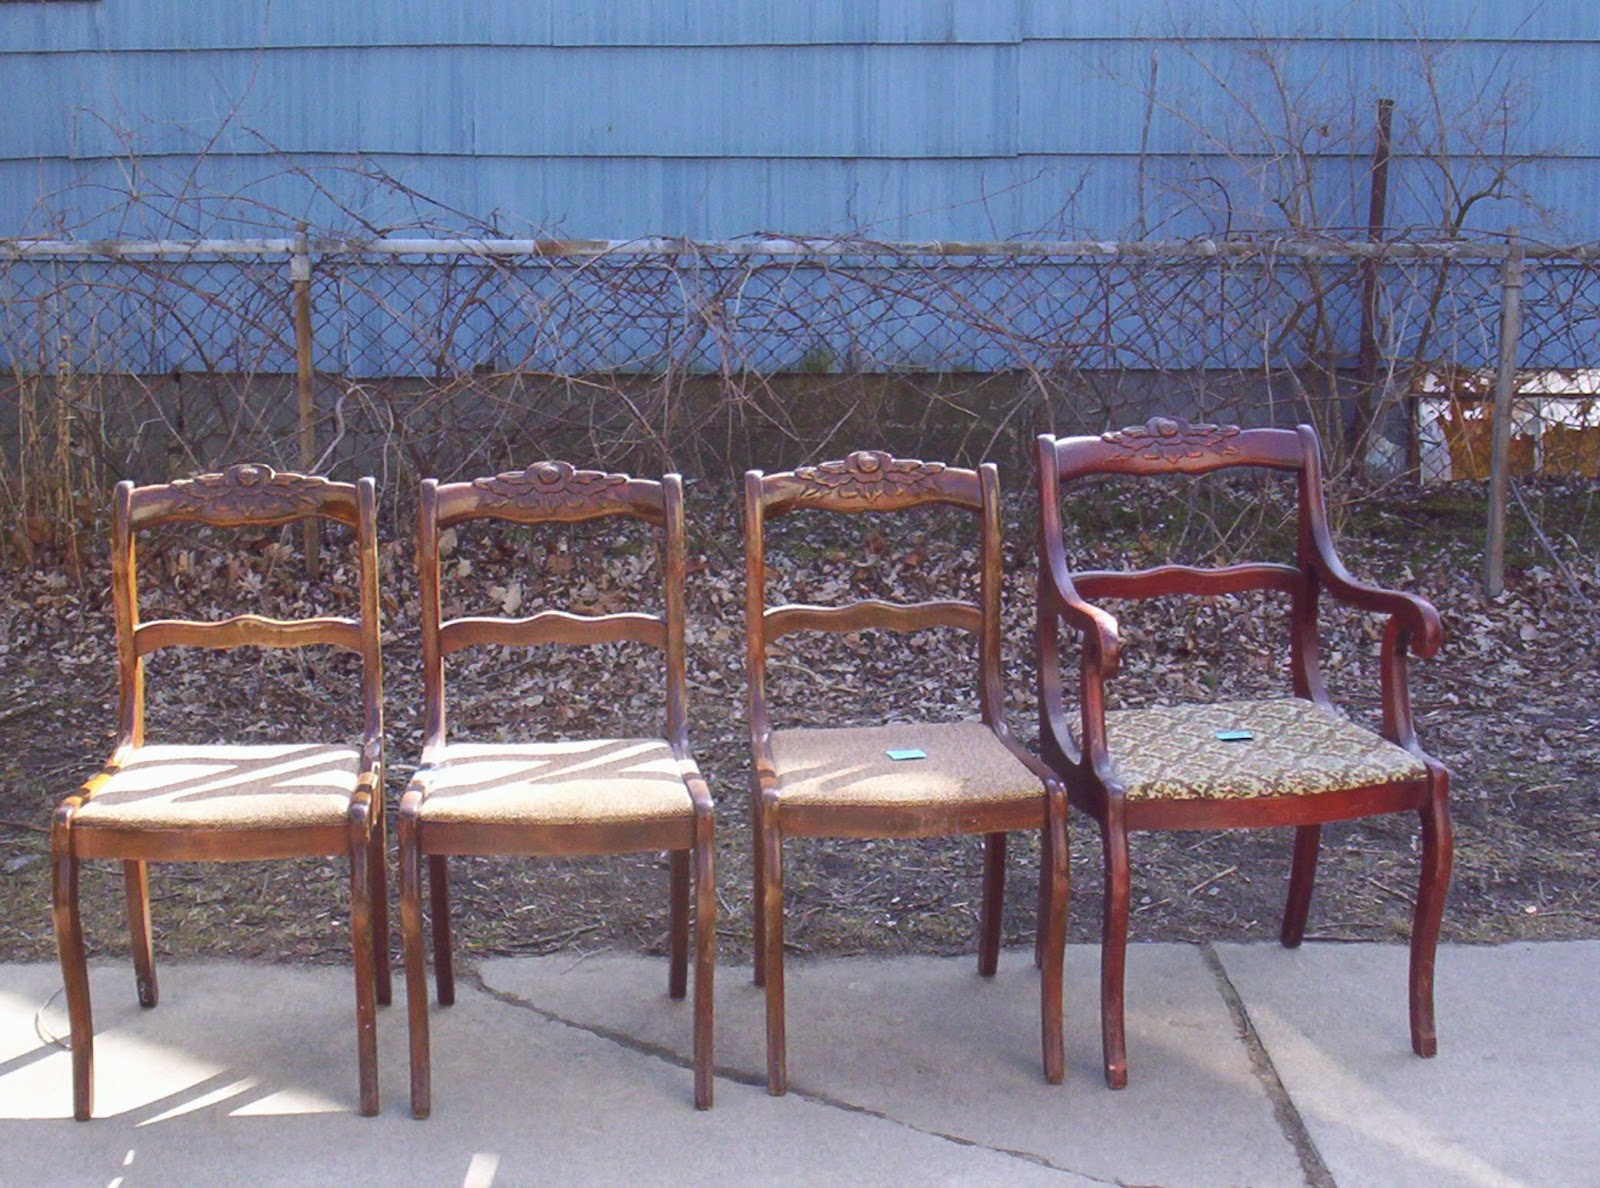 Antique duncan phyfe chairs -  Amazing Antique Duncan Phyfe Chairs They Are Petite Have Beautiful Carved Flowers On The Top Nice Curvy Legs On The Bottom So Much Potential